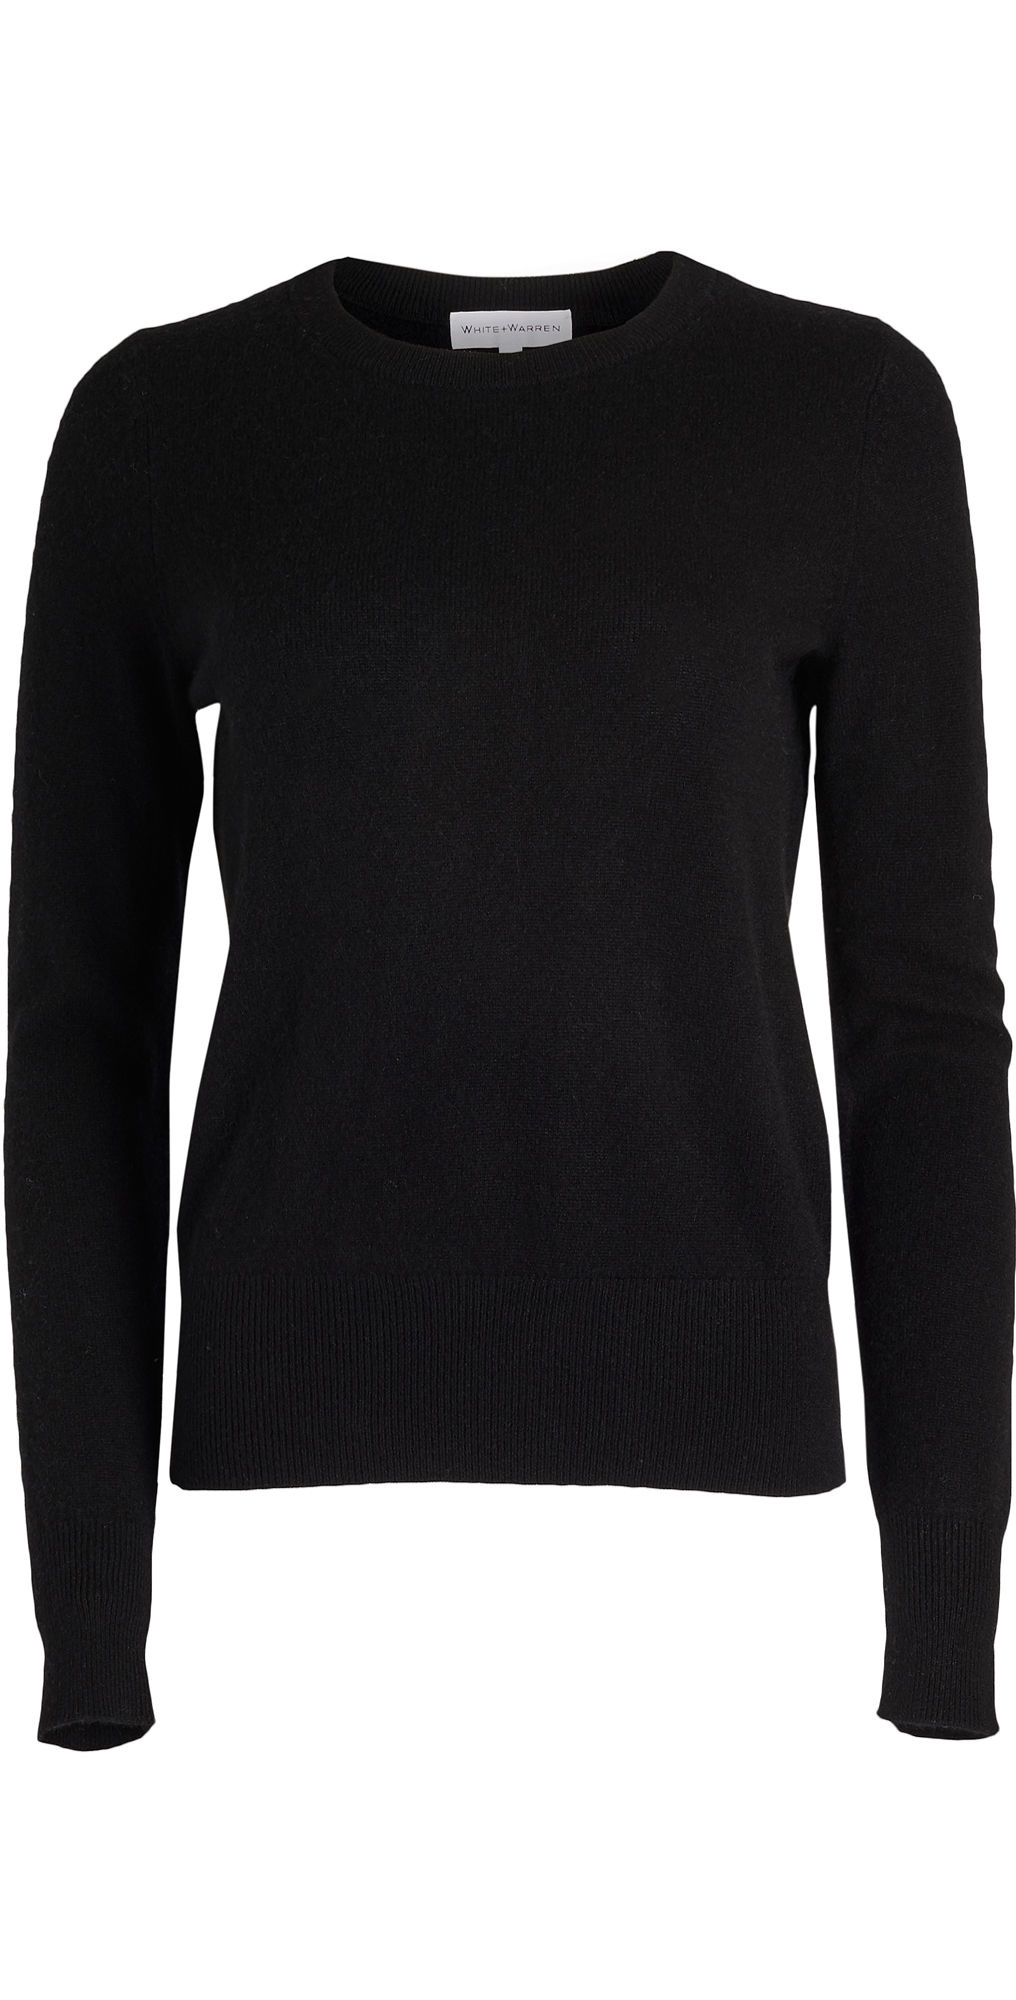 White + Warren Cashmere Long Sleeve Crew Neck Sweater